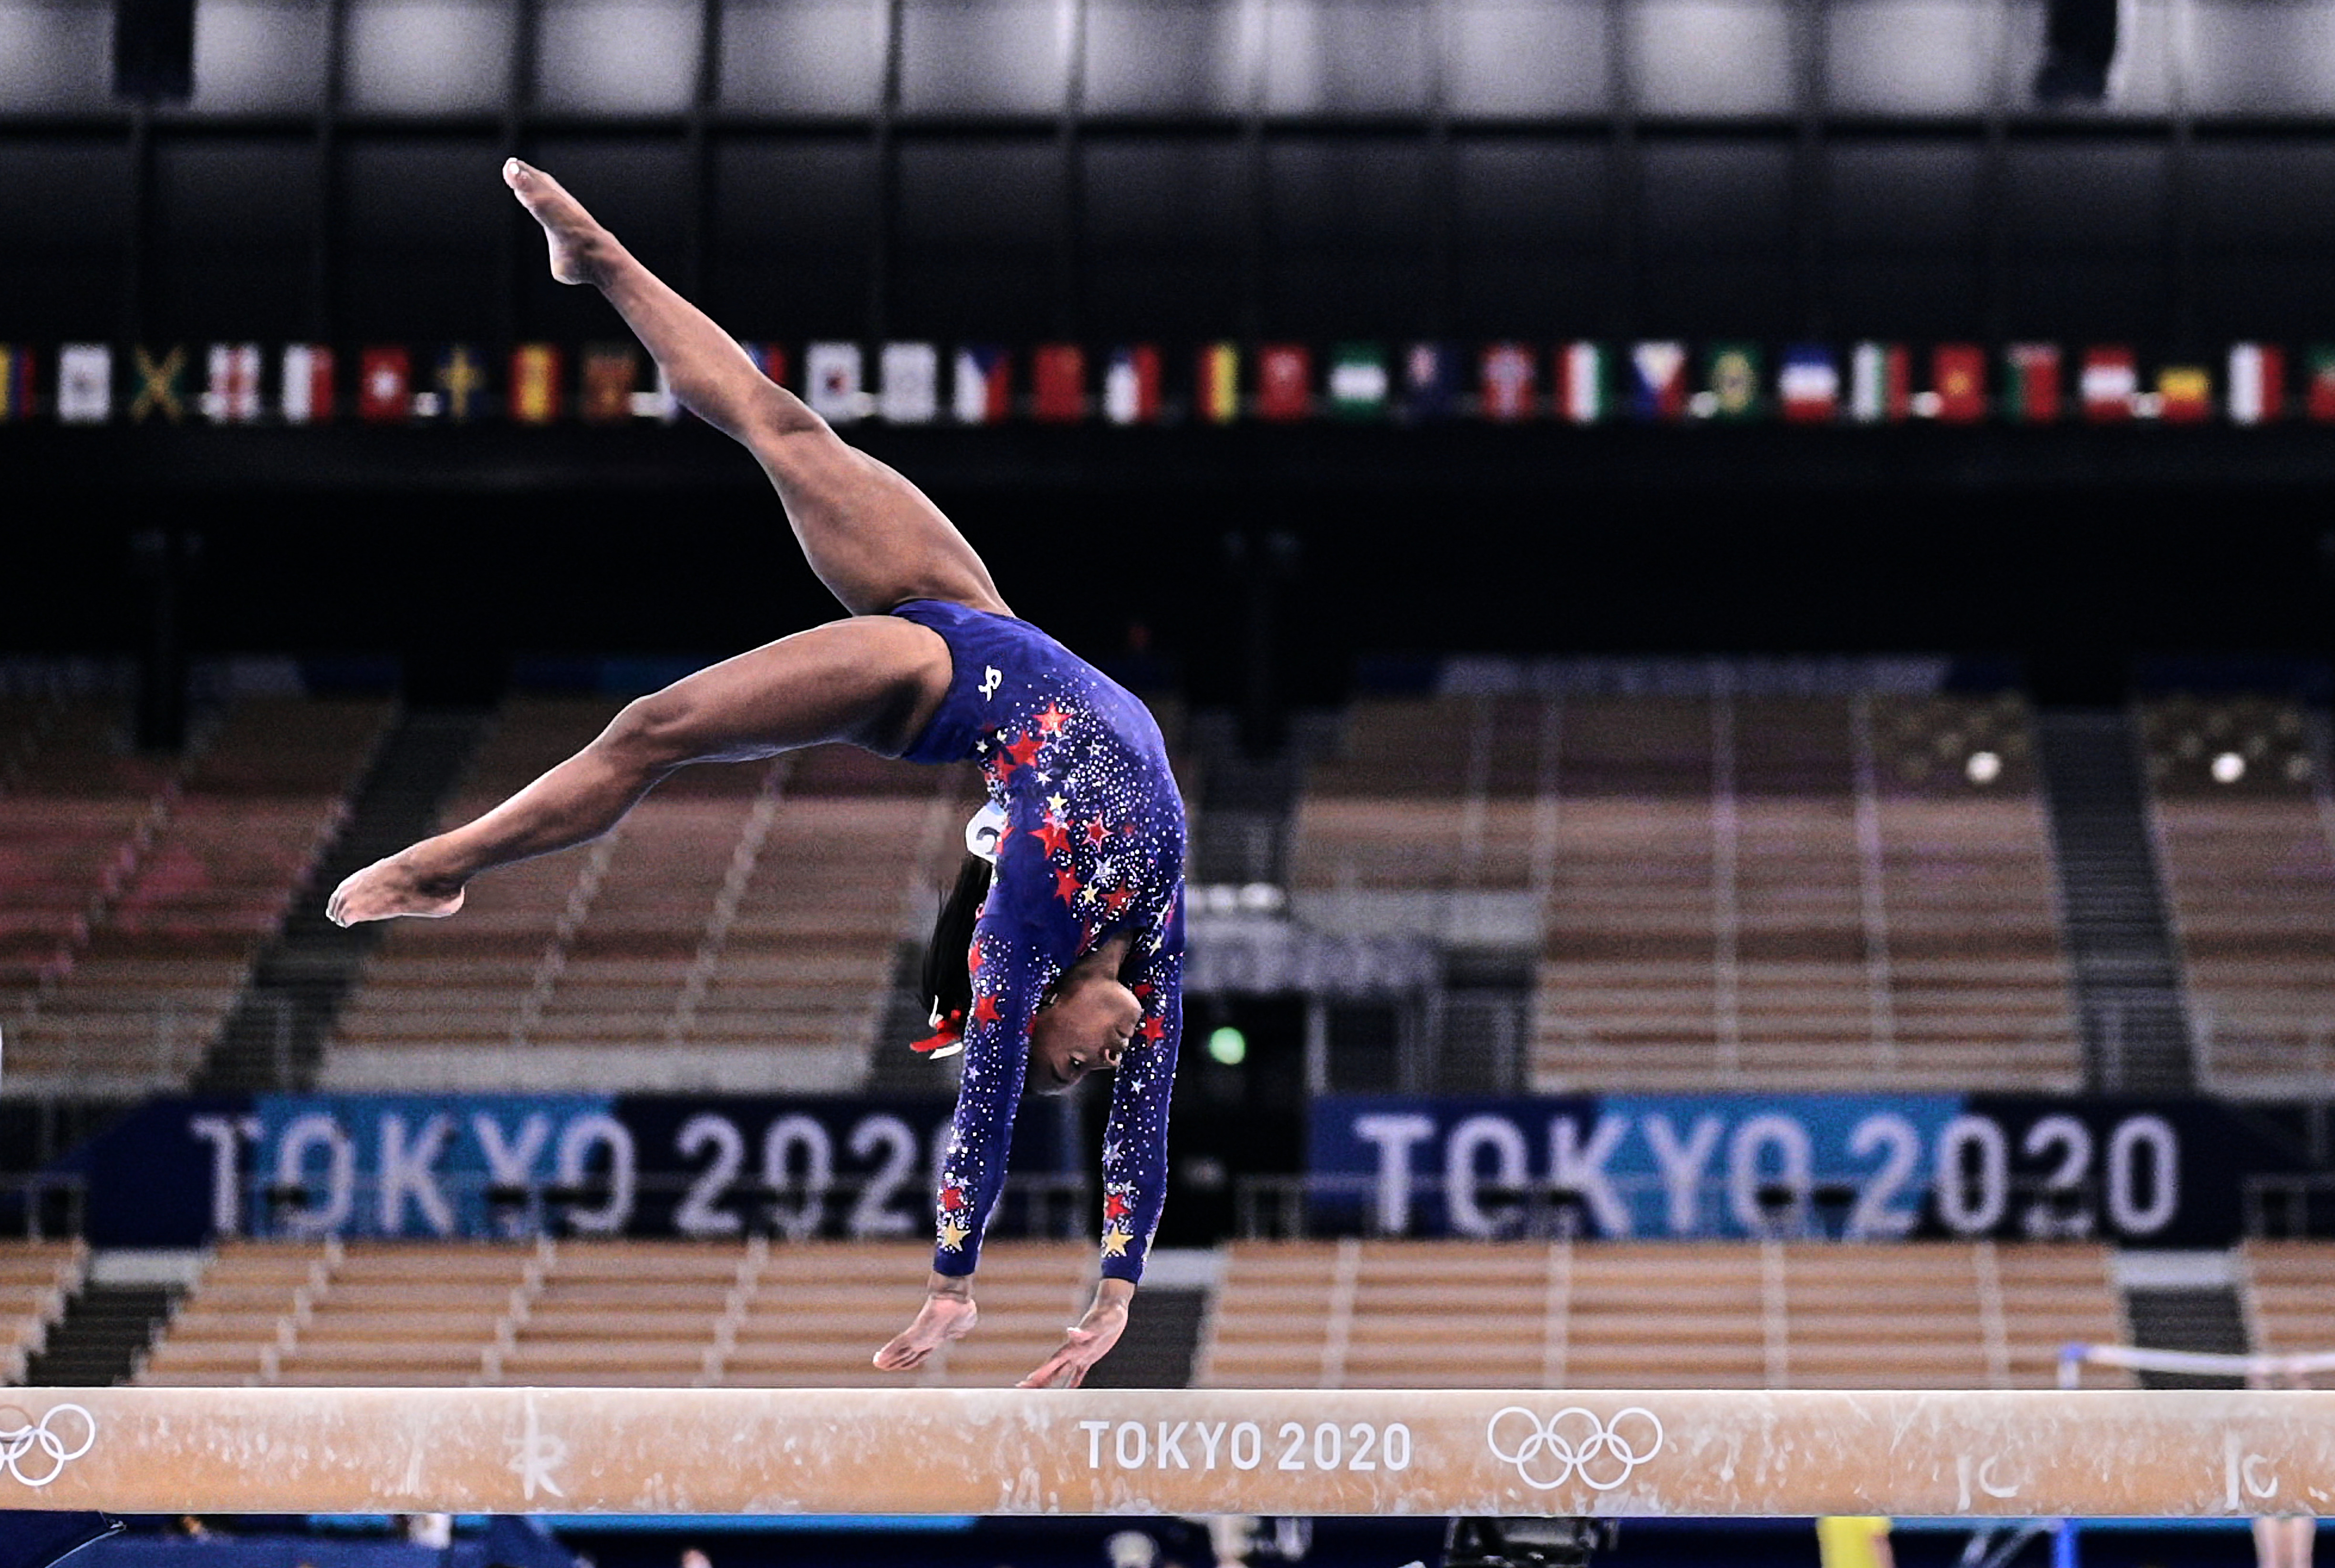 Simone Biles of United States of America during women's qualification for the Artistic Gymnastics final at the Olympics at Ariake Gymnastics Centre, Tokyo, Japan on July 25, 2021.